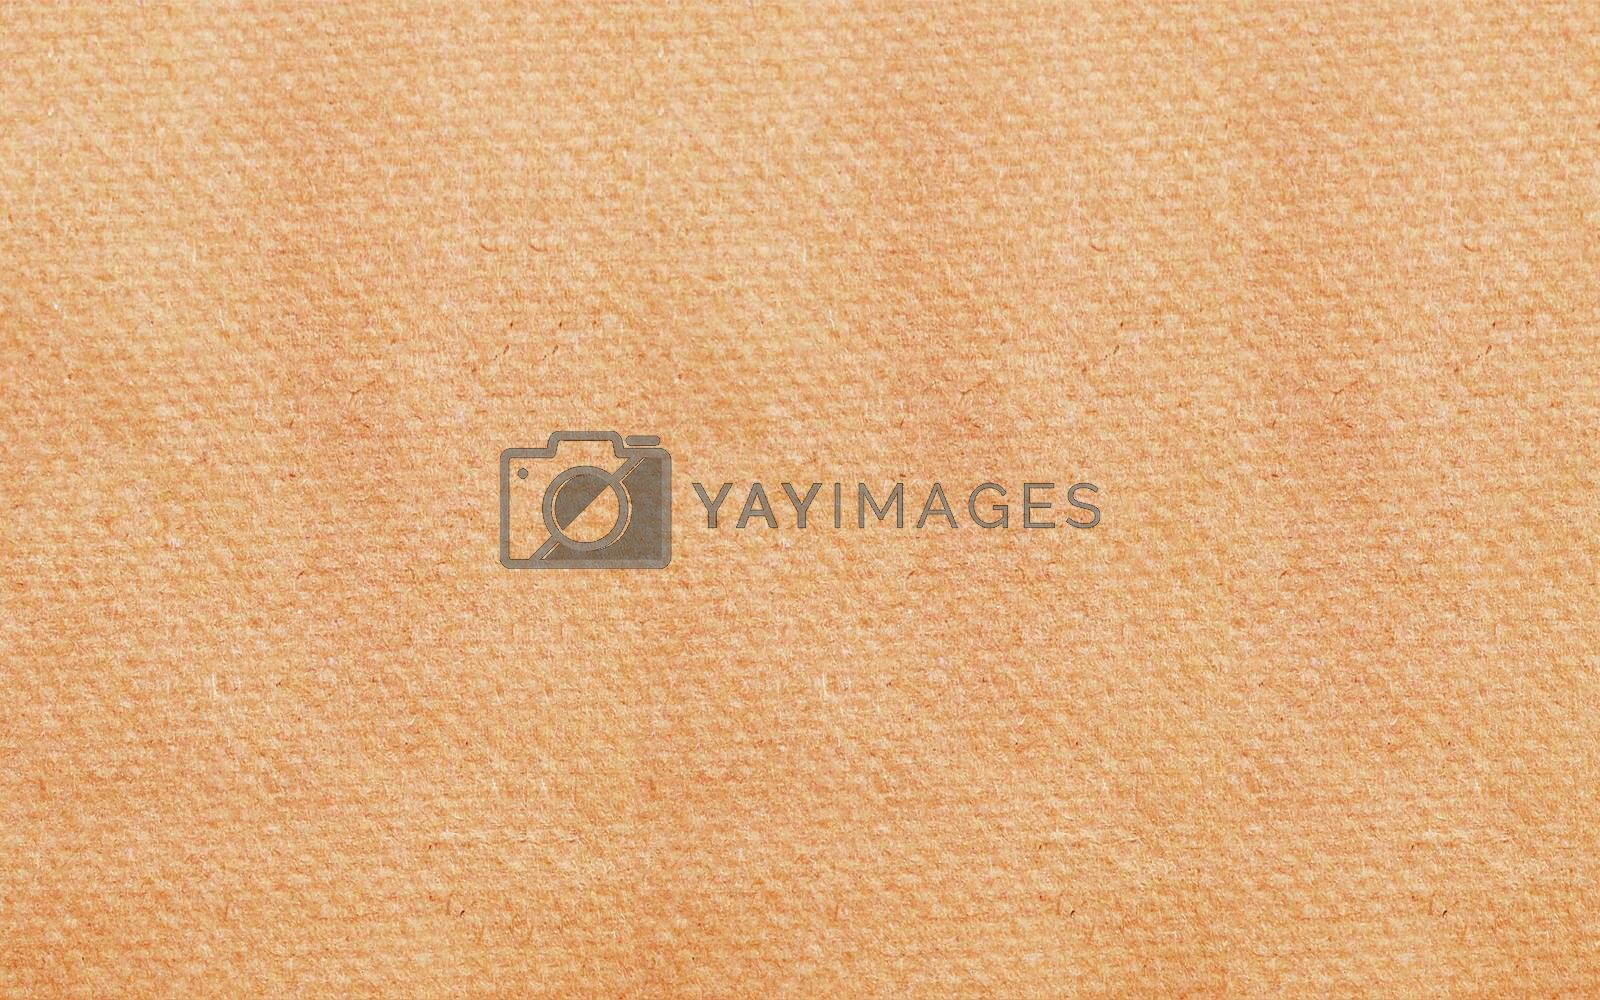 cardboard texture background by Bowonpat